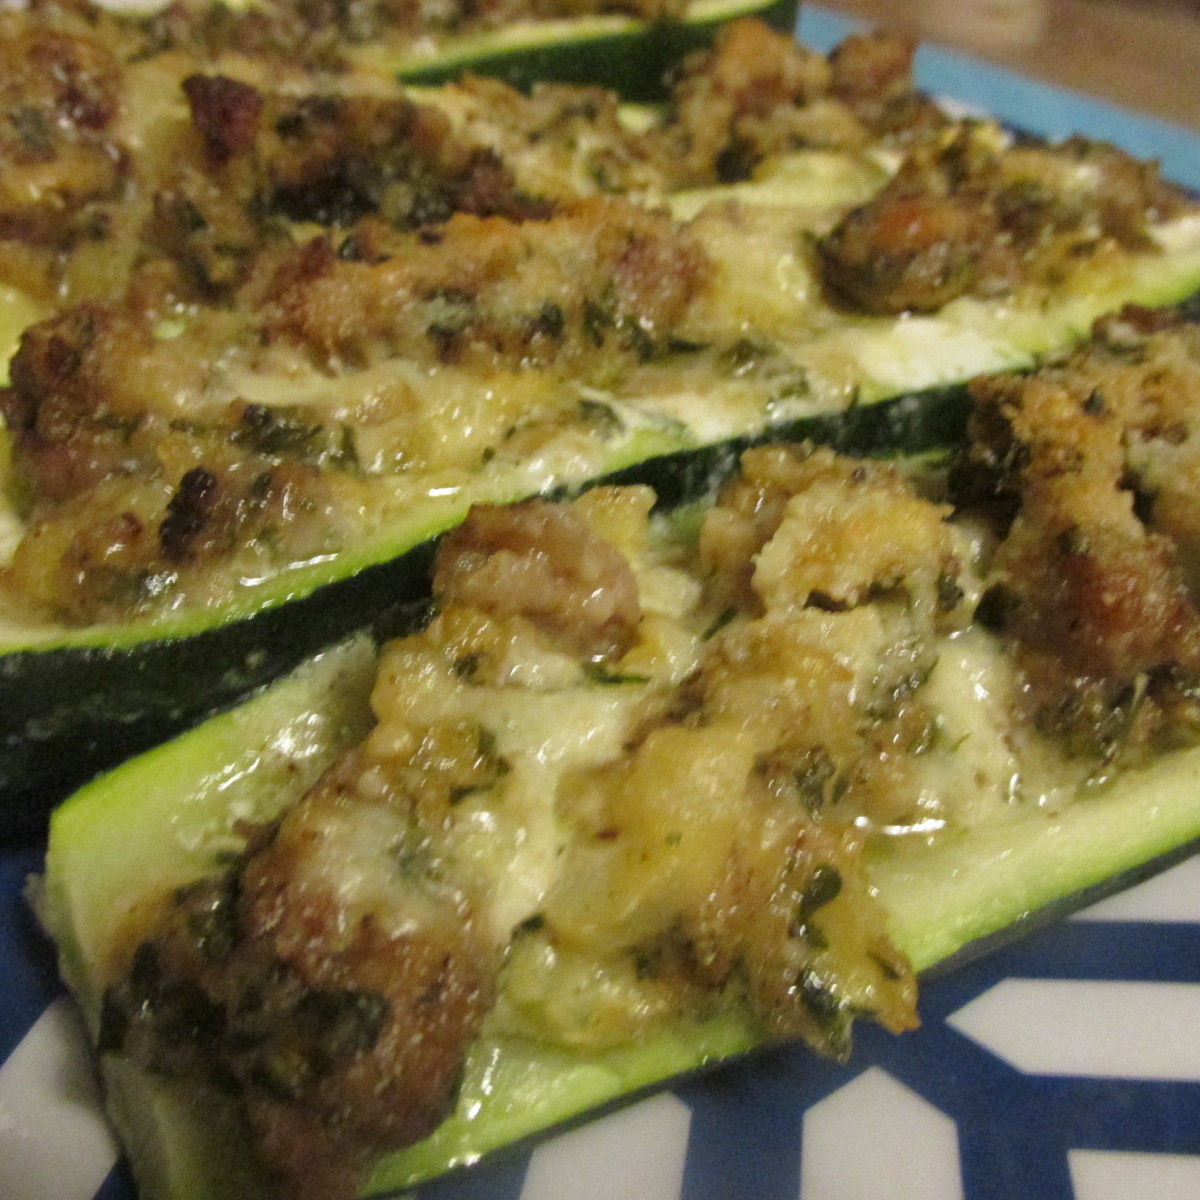 Zucchini stuffed with sausage filling, hot and ready to eat